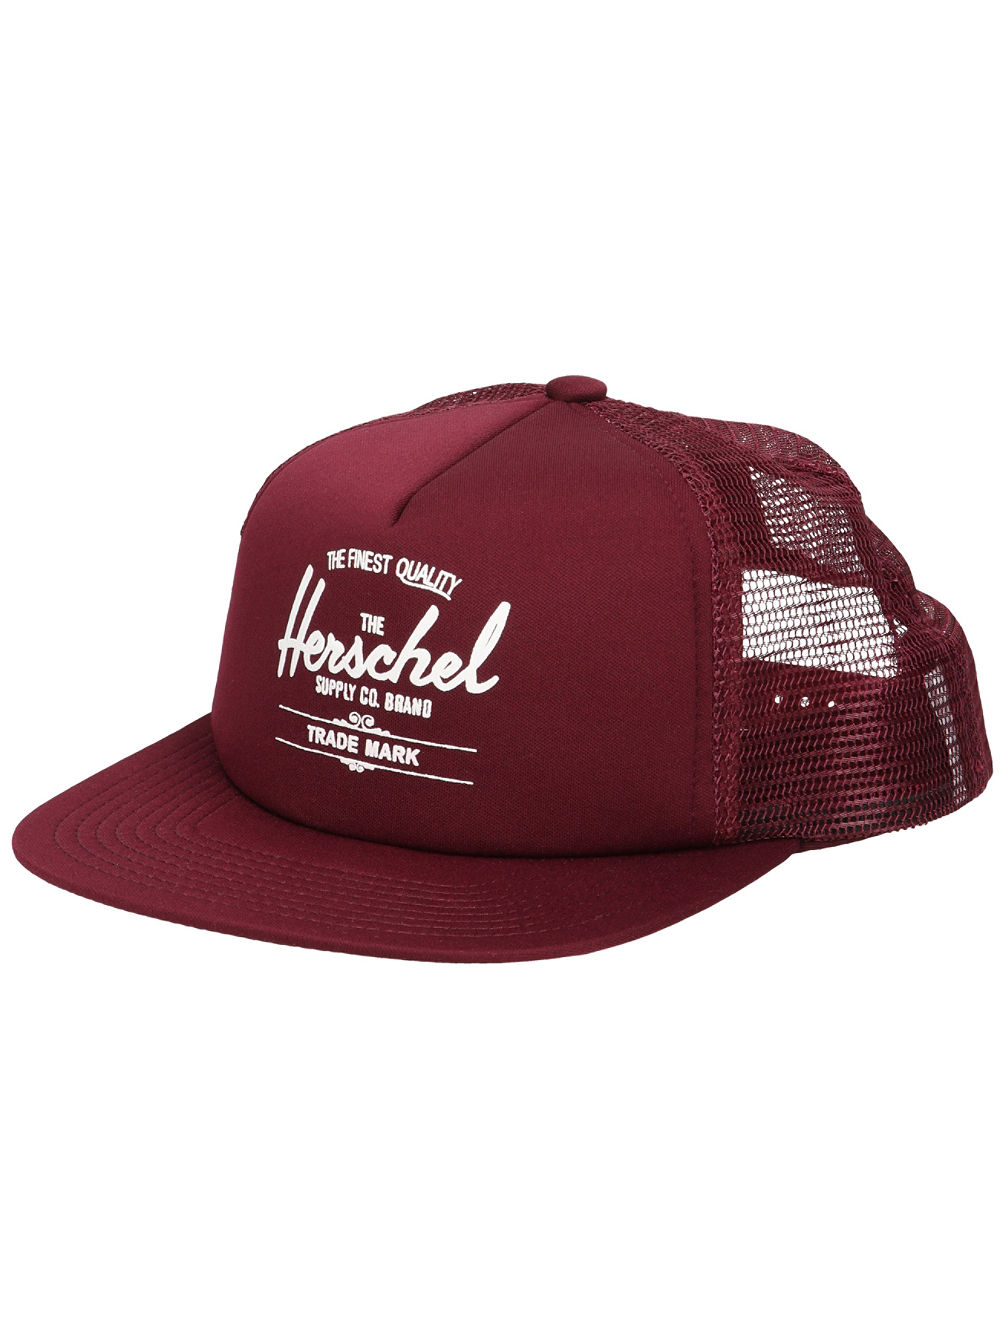 Buy Herschel Whaler Mesh Cap online at blue-tomato.com 0c2be1958d0